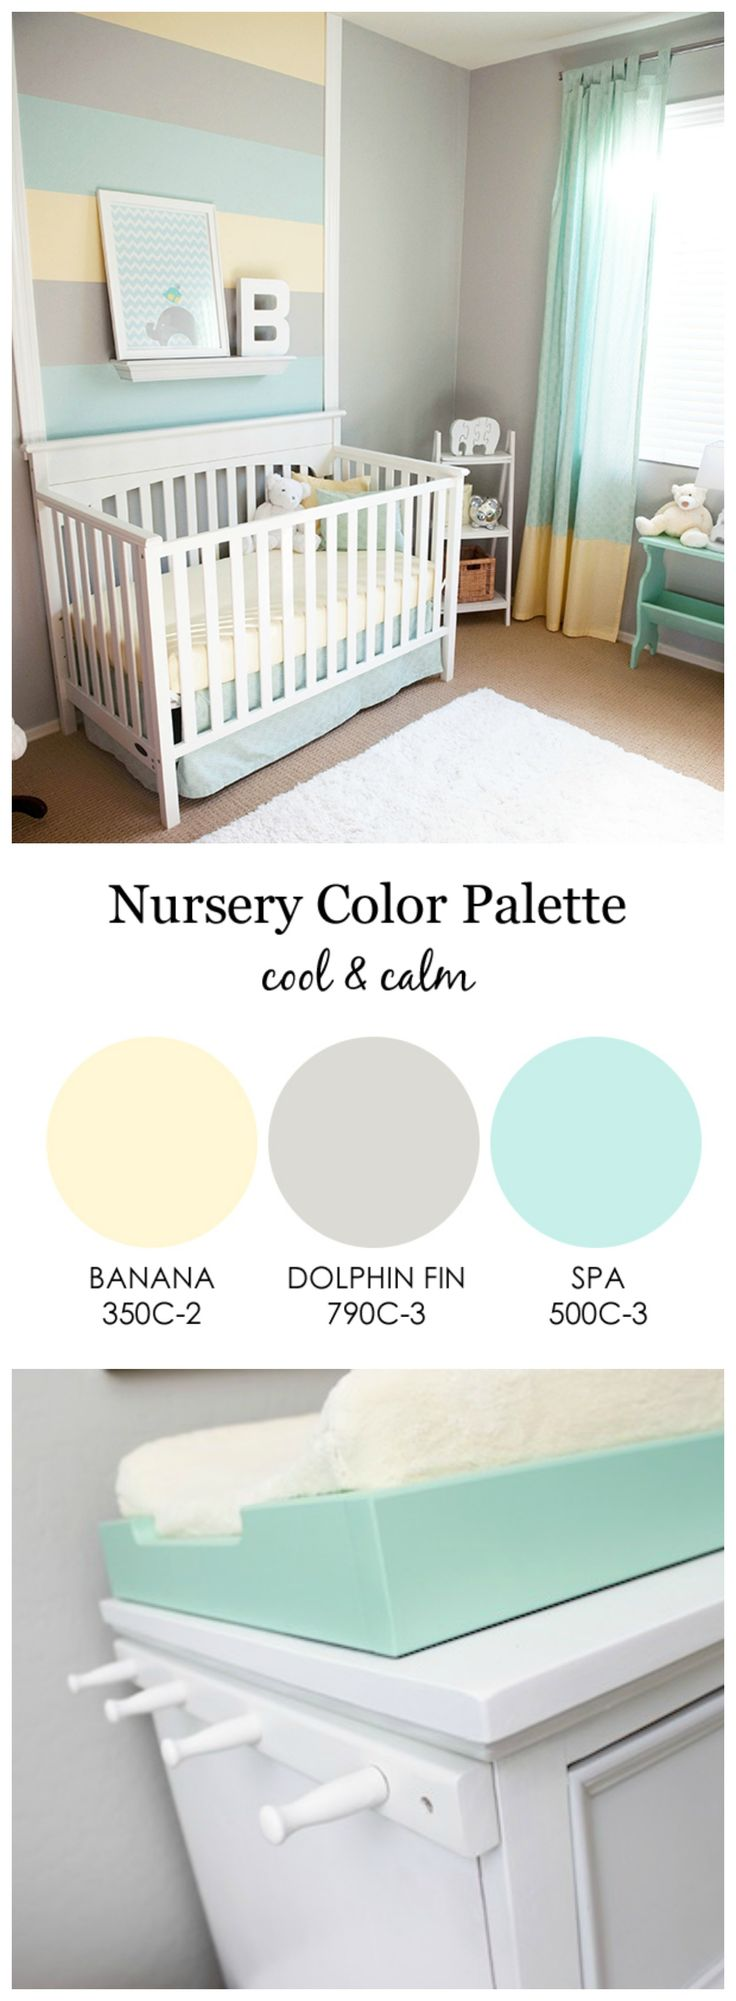 25 best ideas about nursery paint colors on pinterest Calming colors for baby nursery